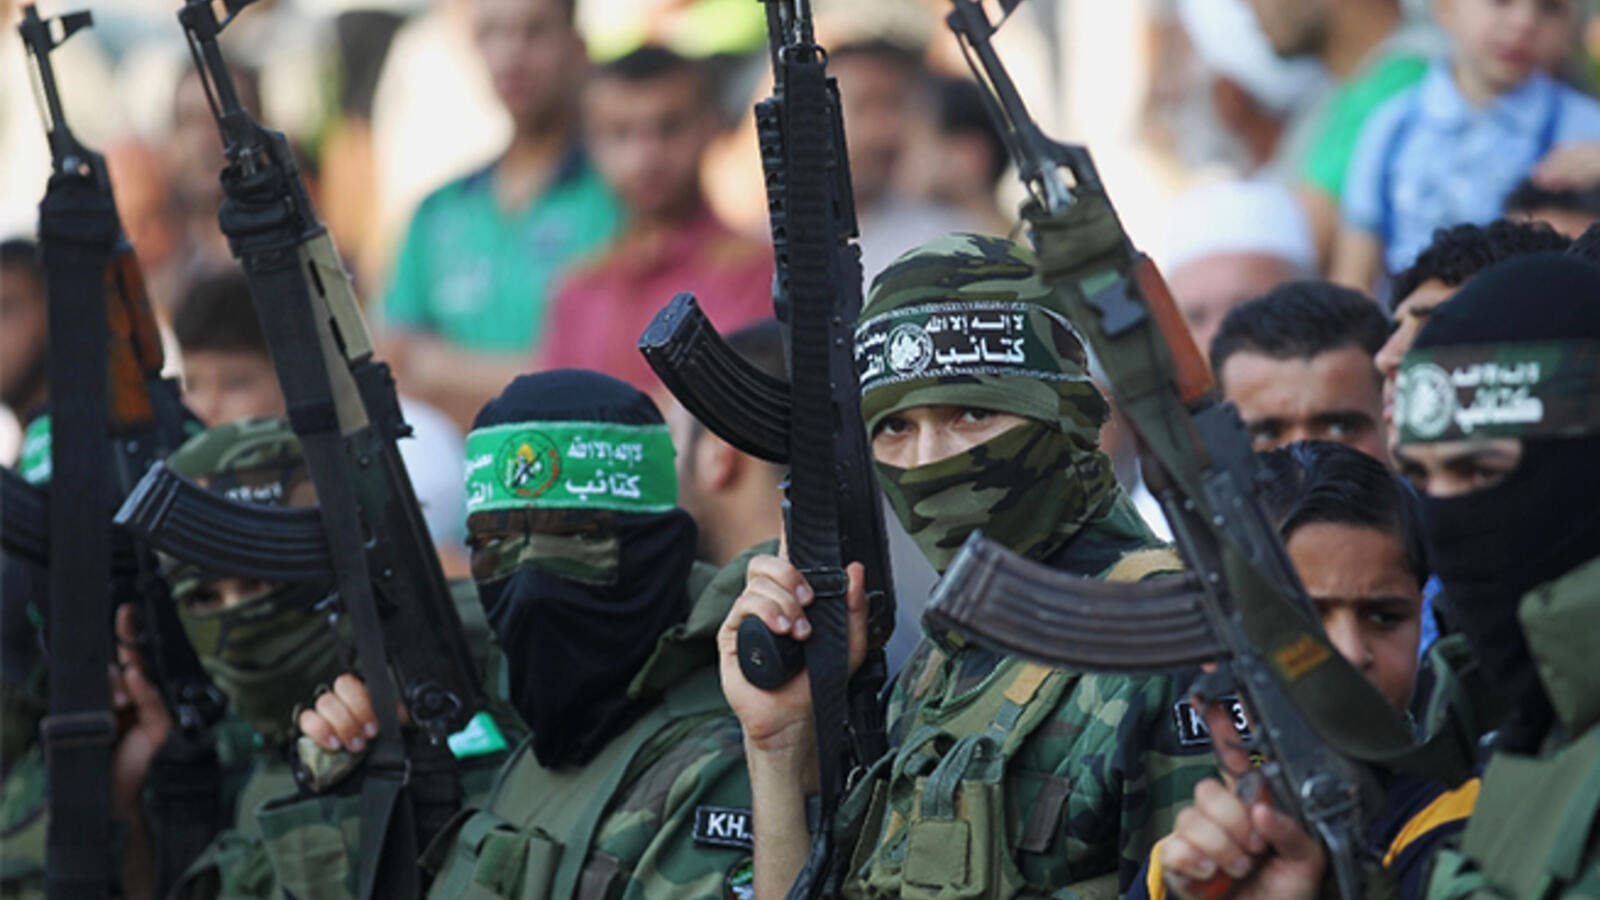 The land giveaway is the latest sign that Hamas is struggling financially after almost a decade of uncontested power in the coastal strip. (AFP/File)